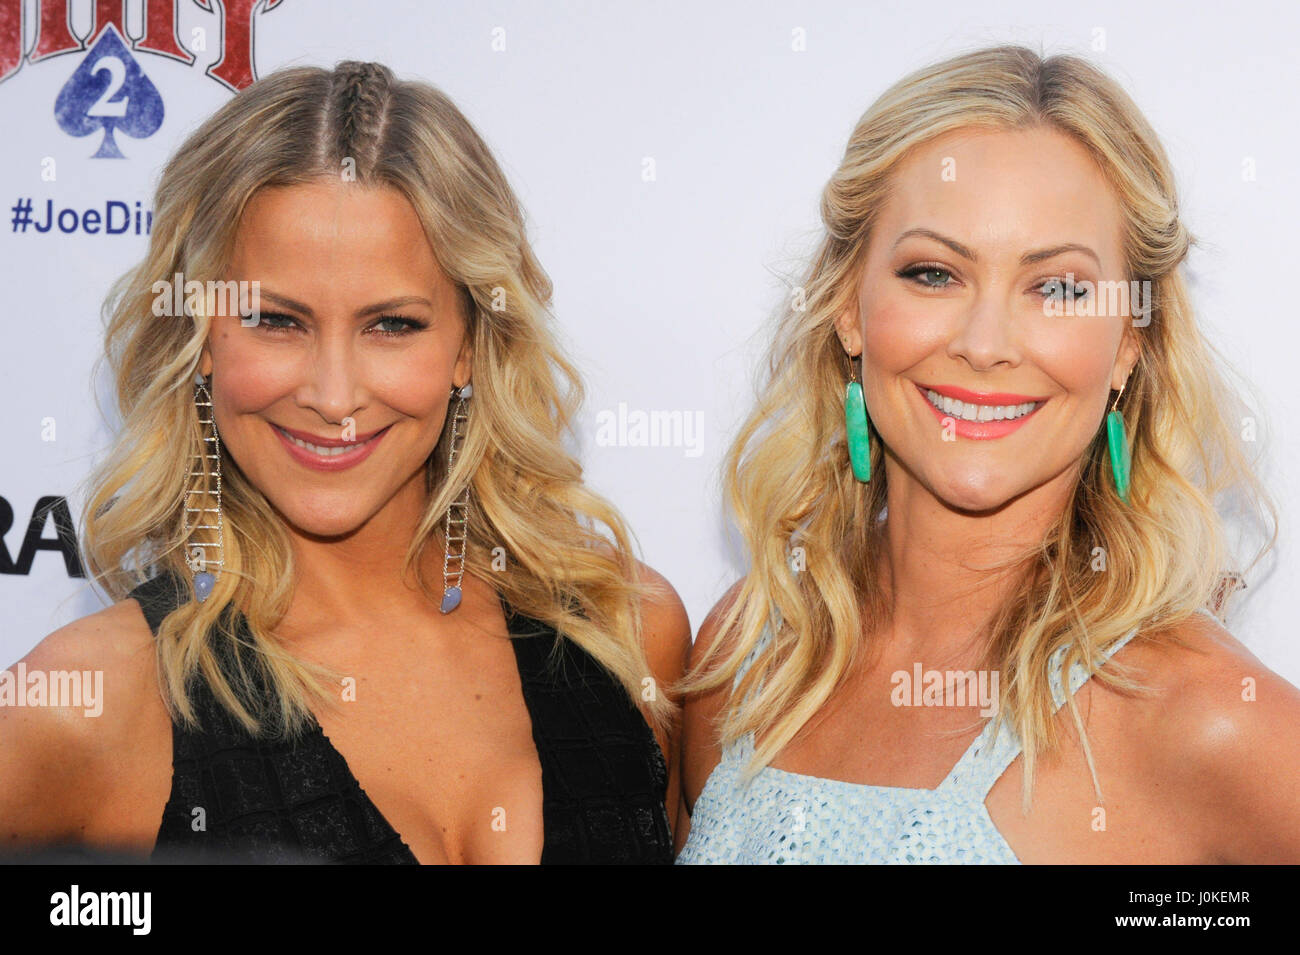 Sisters Brittany And Cynthia Daniel Attend The Joe Dirt 2 Beautiful Stock Photo Alamy During a quest to find his real parents, joe encounters many classic characters, including the firework selling indian kicking wing, a carny named jill who might be his sister, and a. https www alamy com stock photo sisters brittany and cynthia daniel attend the joe dirt 2 beautiful 138111591 html